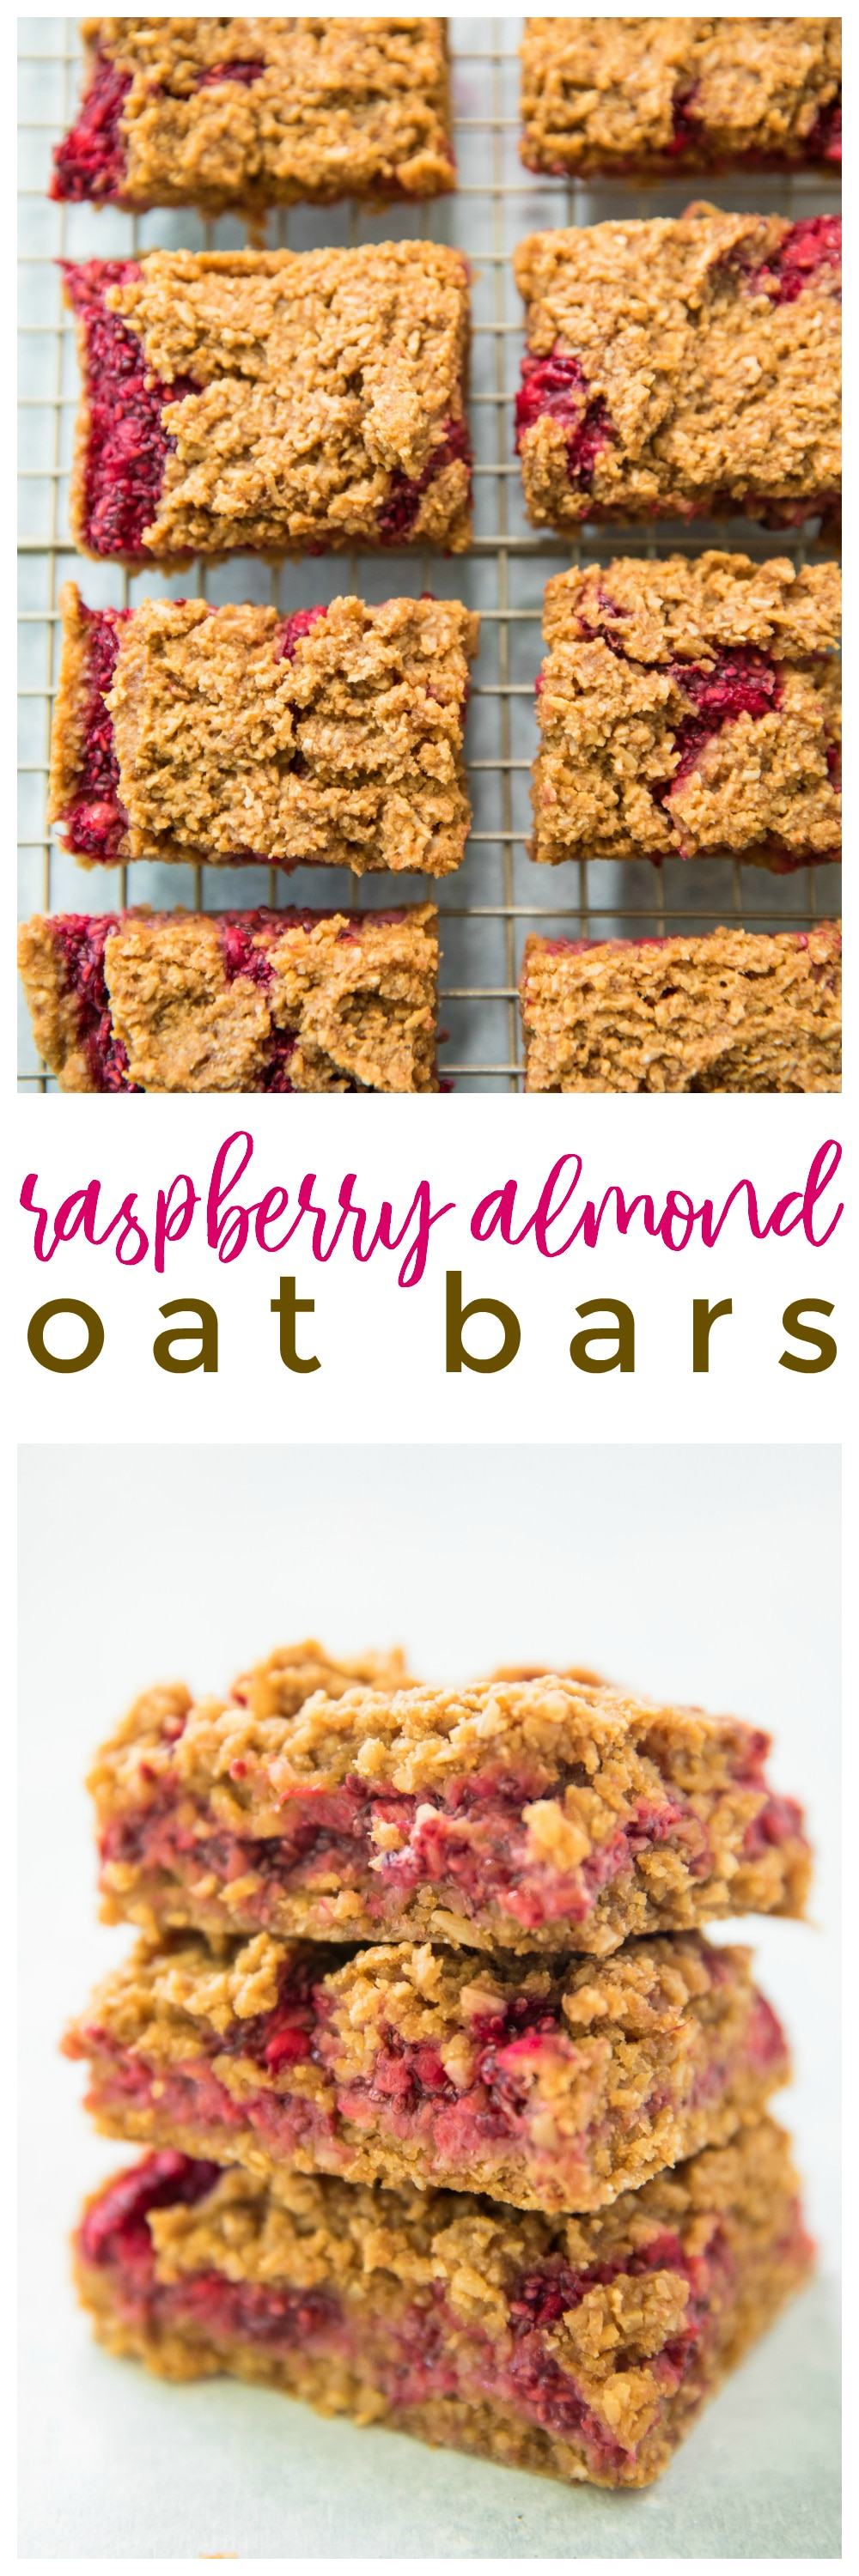 Raspberry Almond Oat Bars are a healthier fruit dessert made with fresh juicy raspberries and a delicious almond oat crumb topping. This wholesome recipe is a favorite, because these tasty treats are easy to make and under 150 calories each!